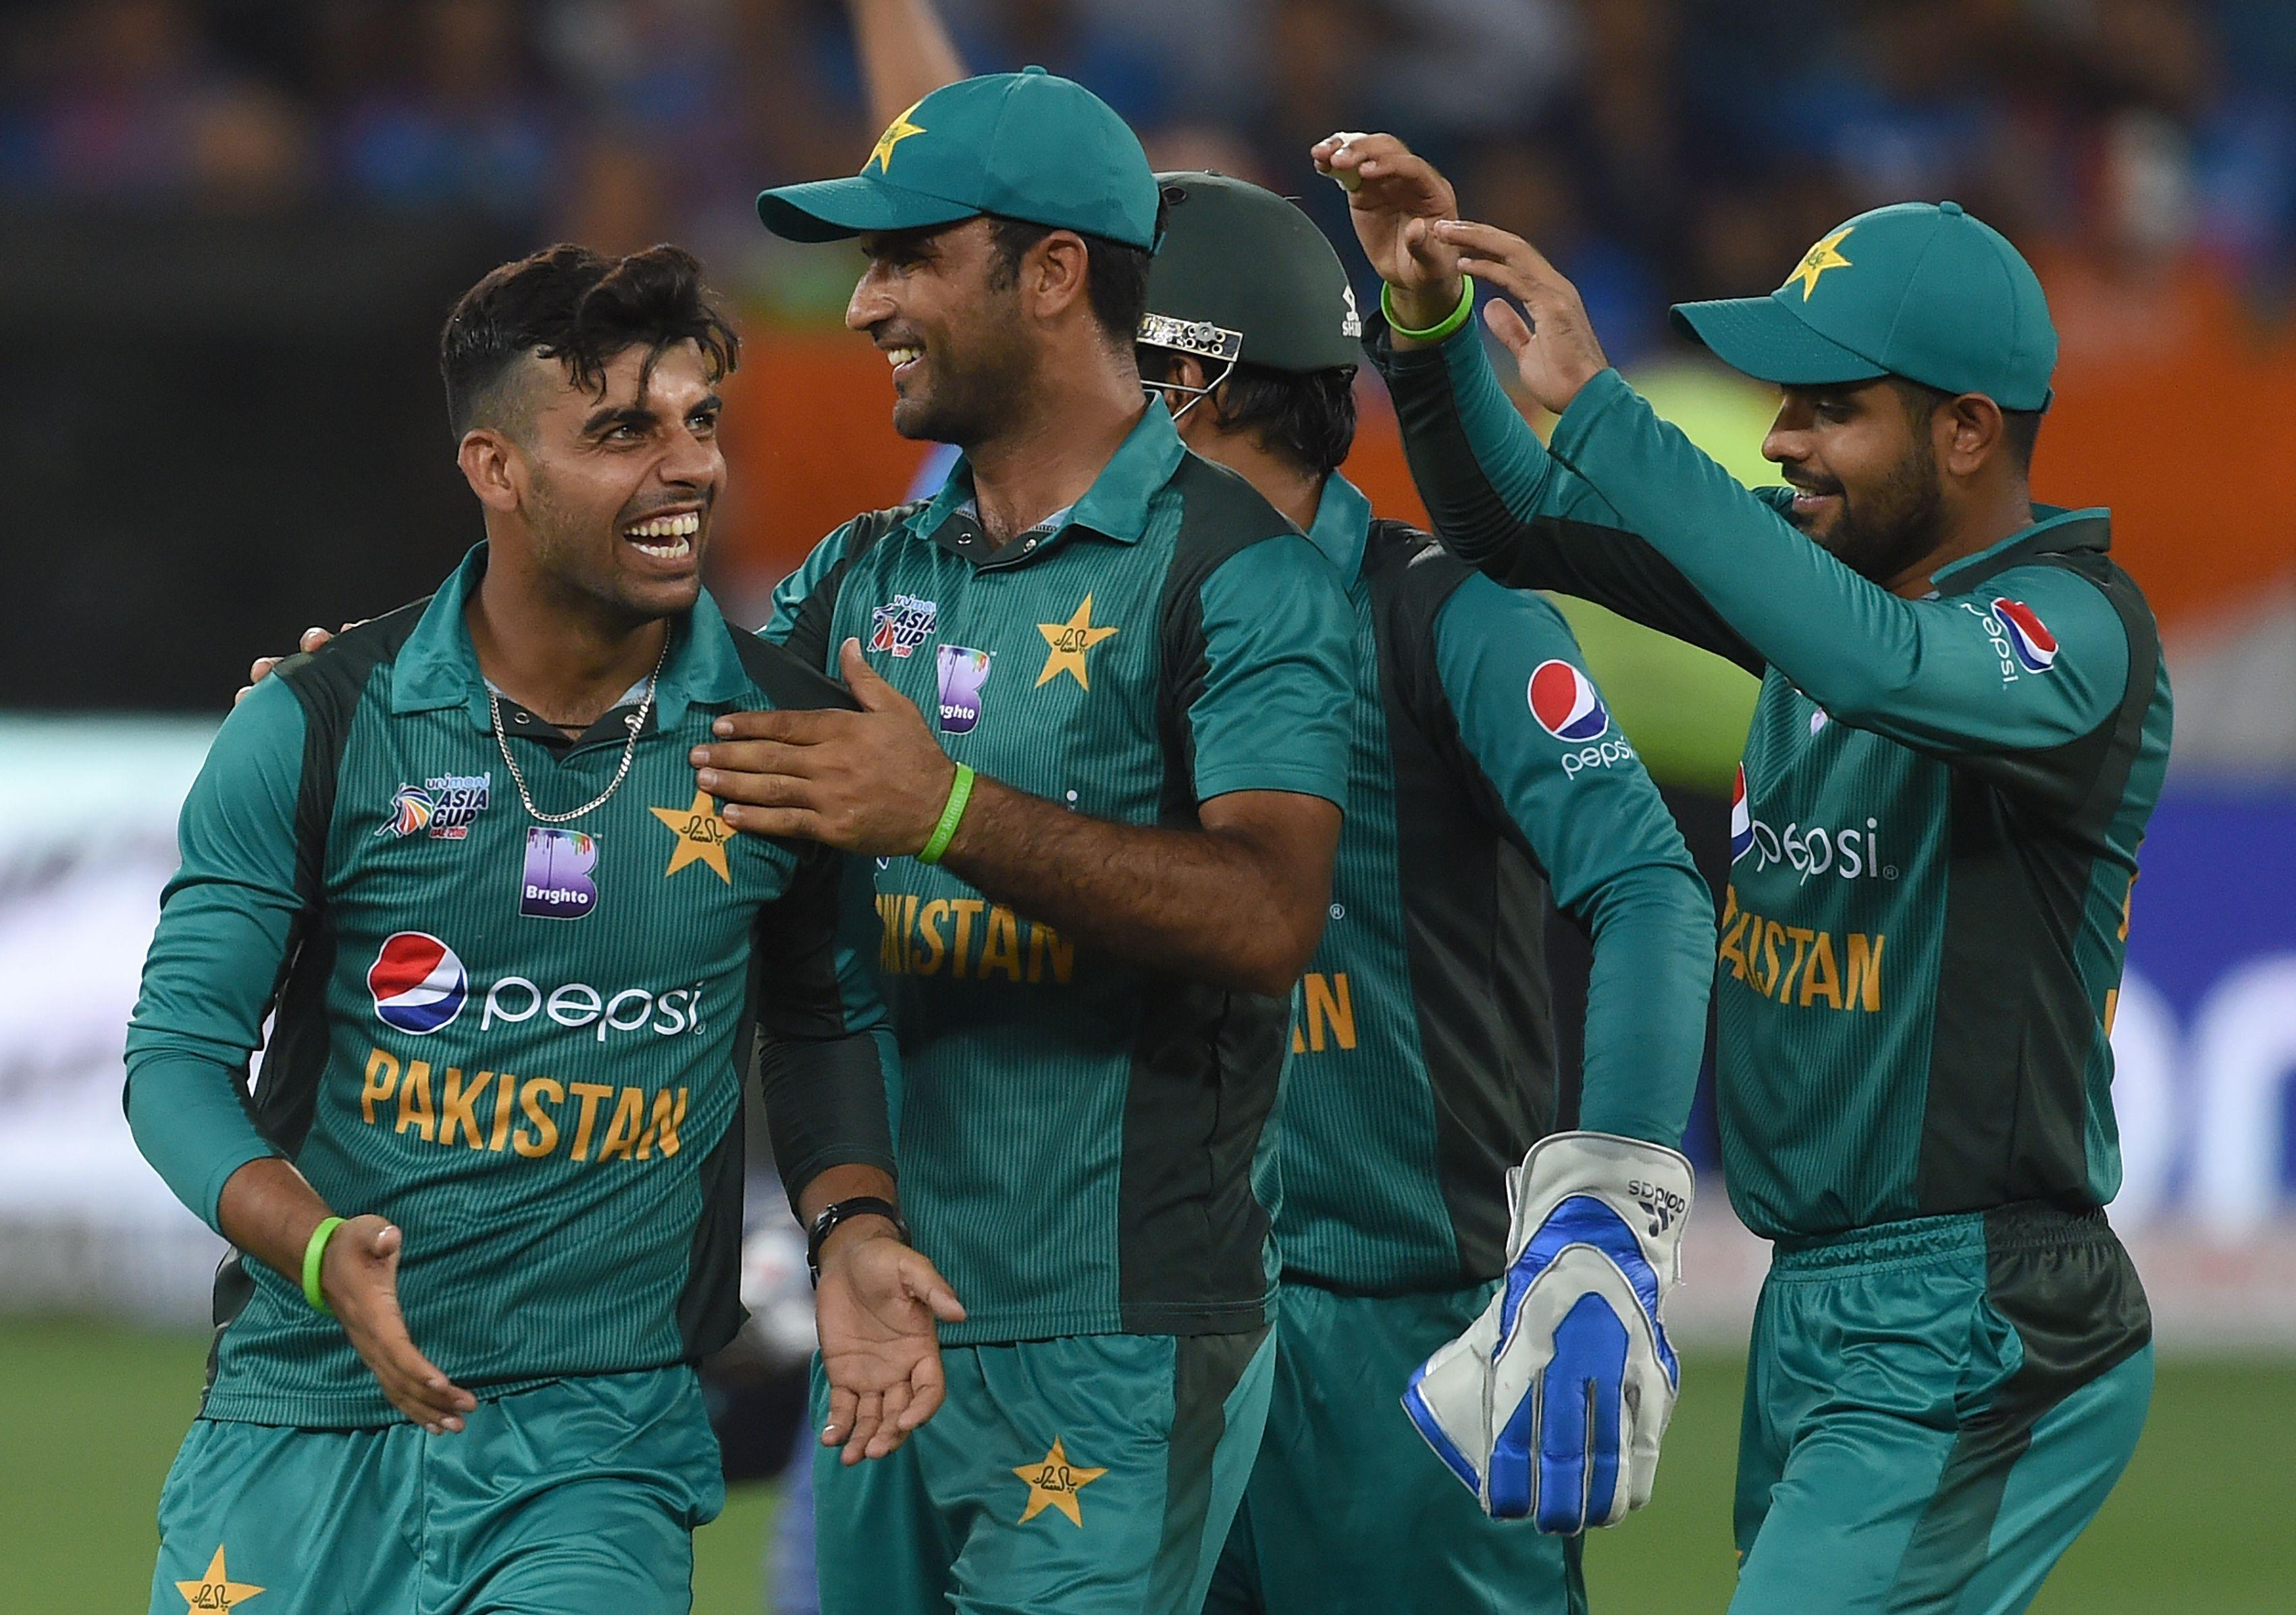 Pakistan are looking to win a first Asia Cup since 2012